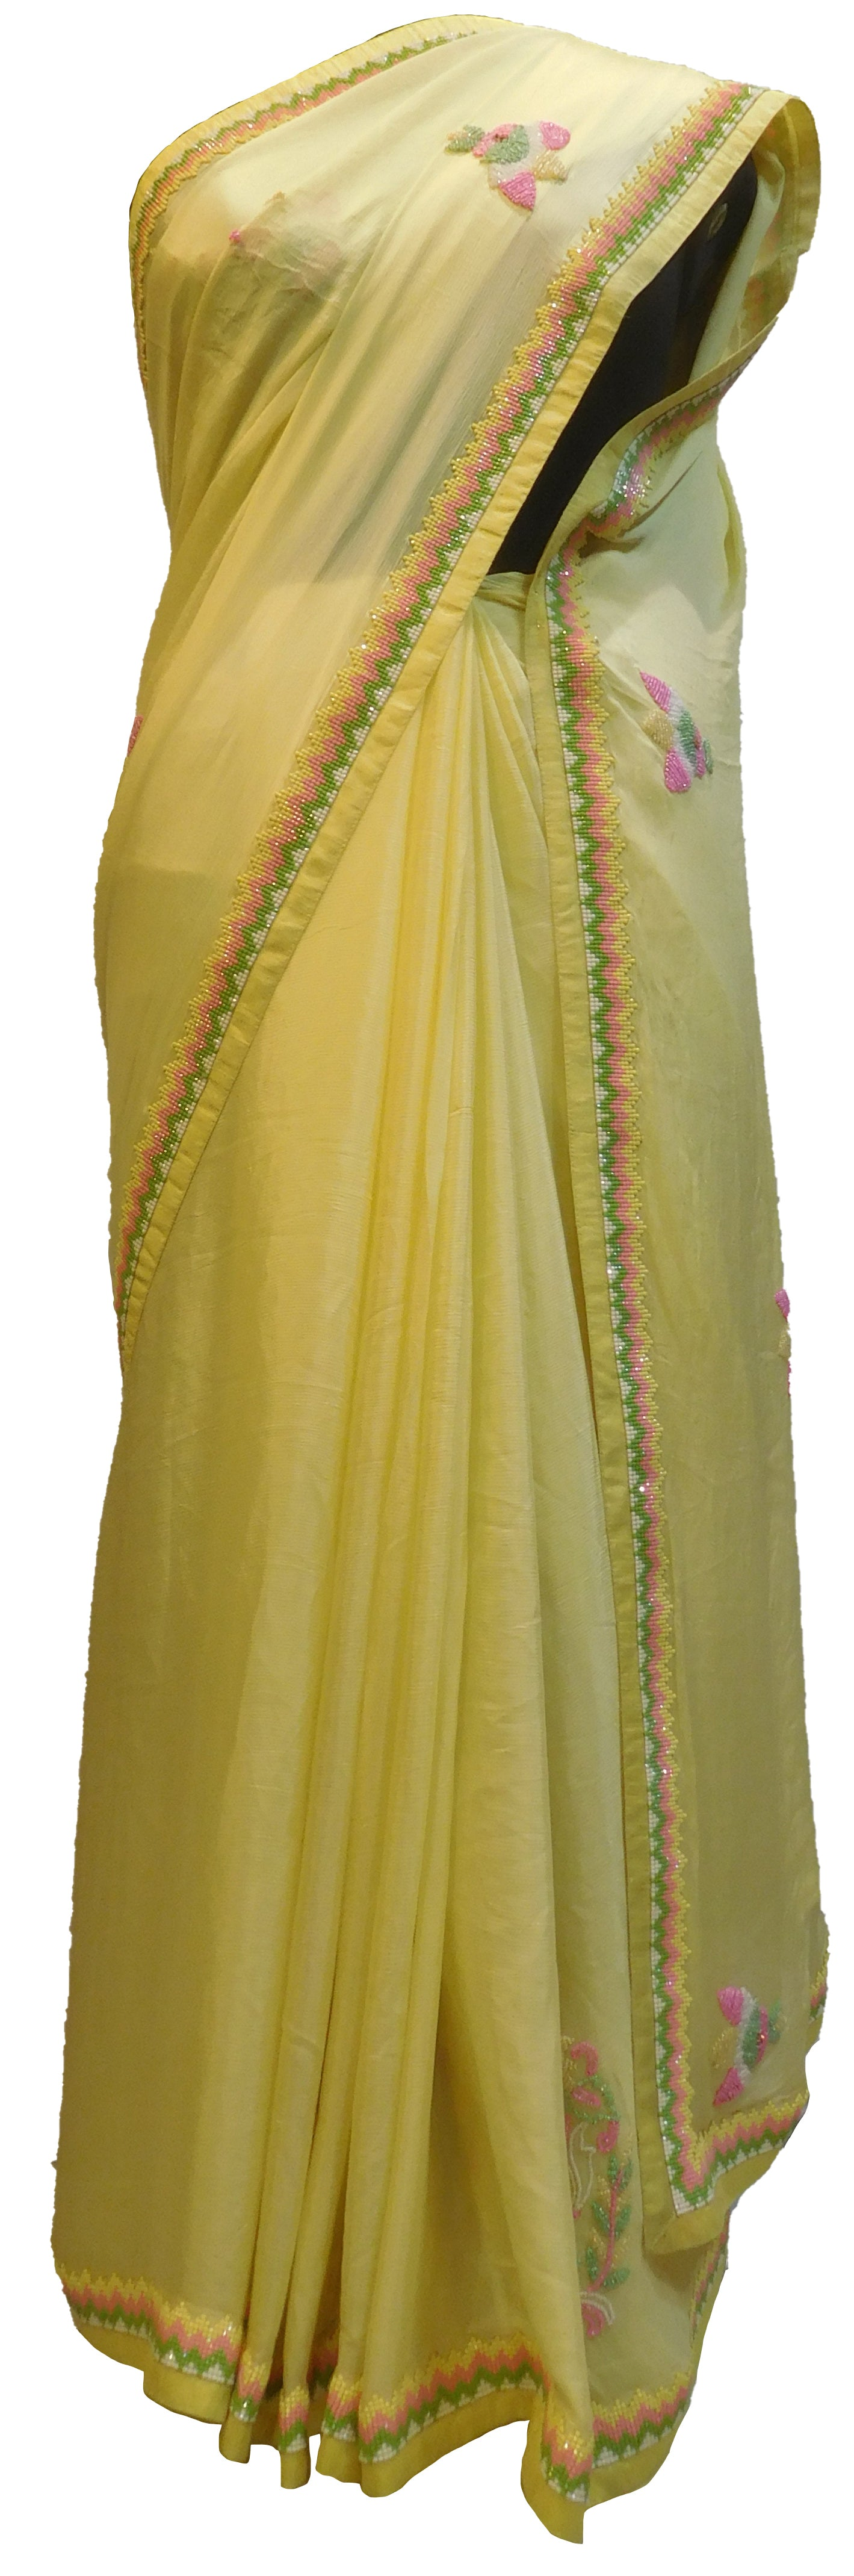 SMSAREE Yellow Designer Wedding Partywear Crepe (Chinon) Stone Sequence & Beads Hand Embroidery Work Bridal Saree Sari With Blouse Piece E488